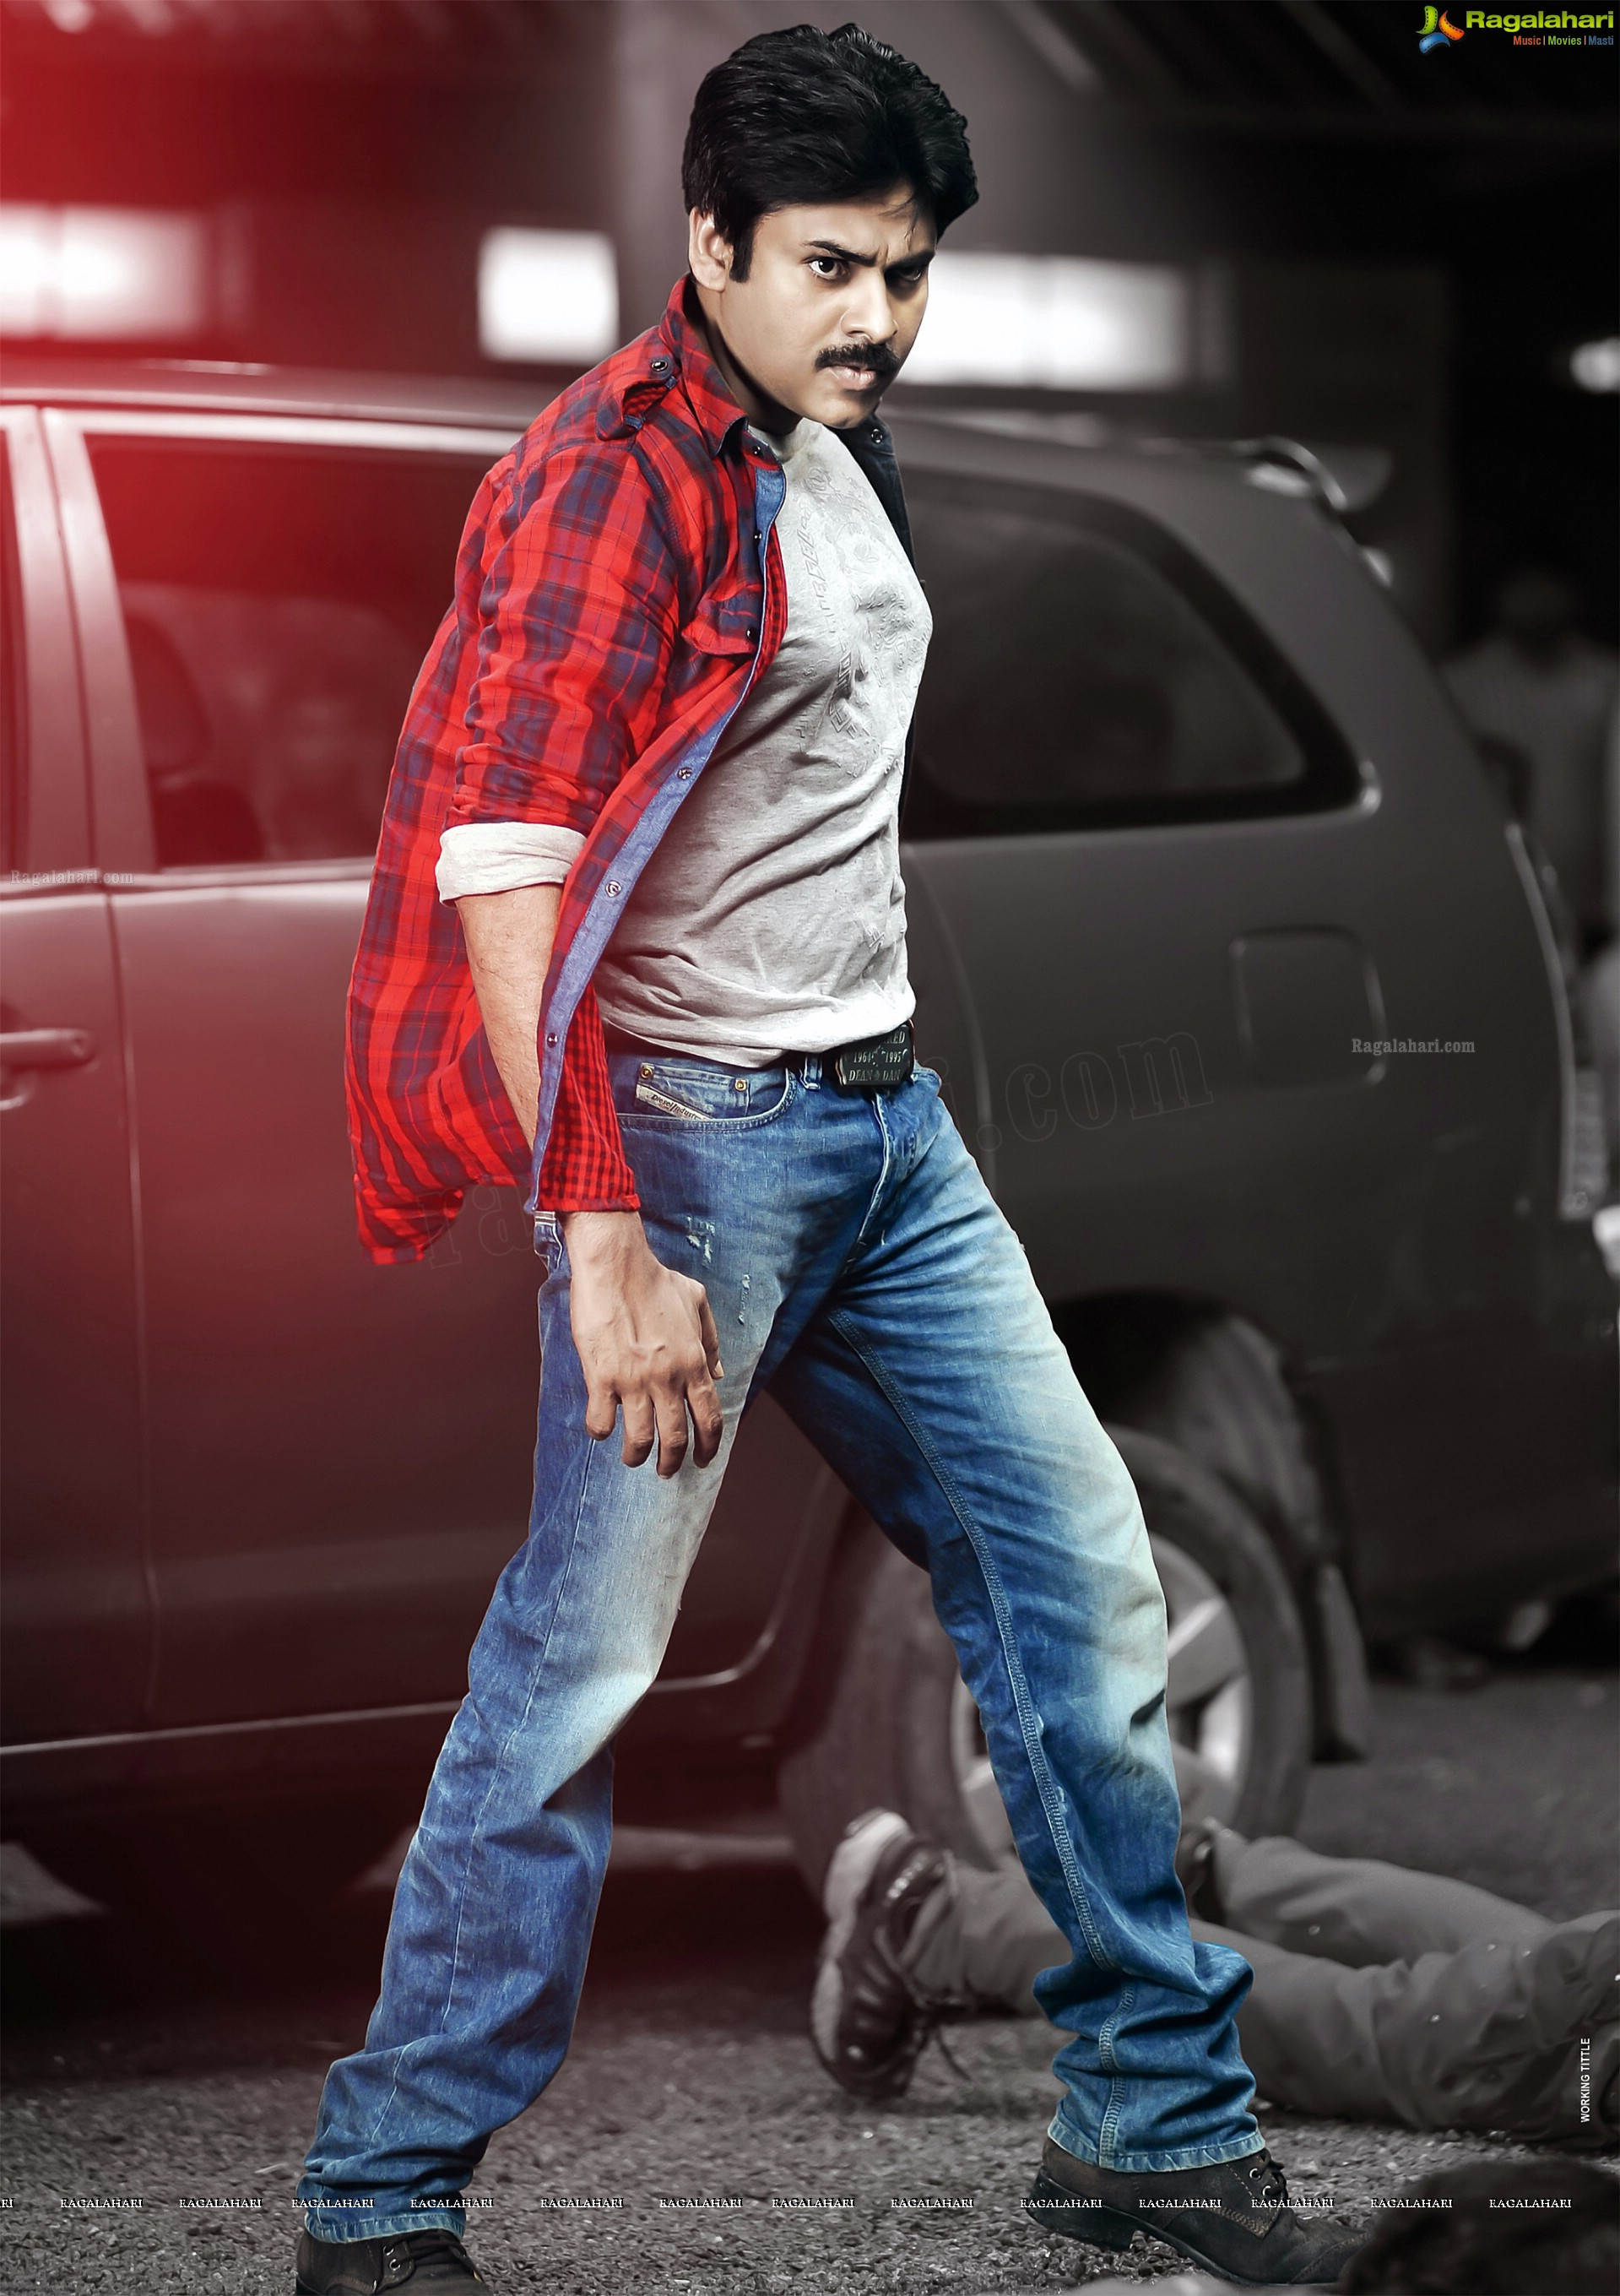 pawan kalyan (hd) image 3 | telugu actress wallpapers ,telugu movie